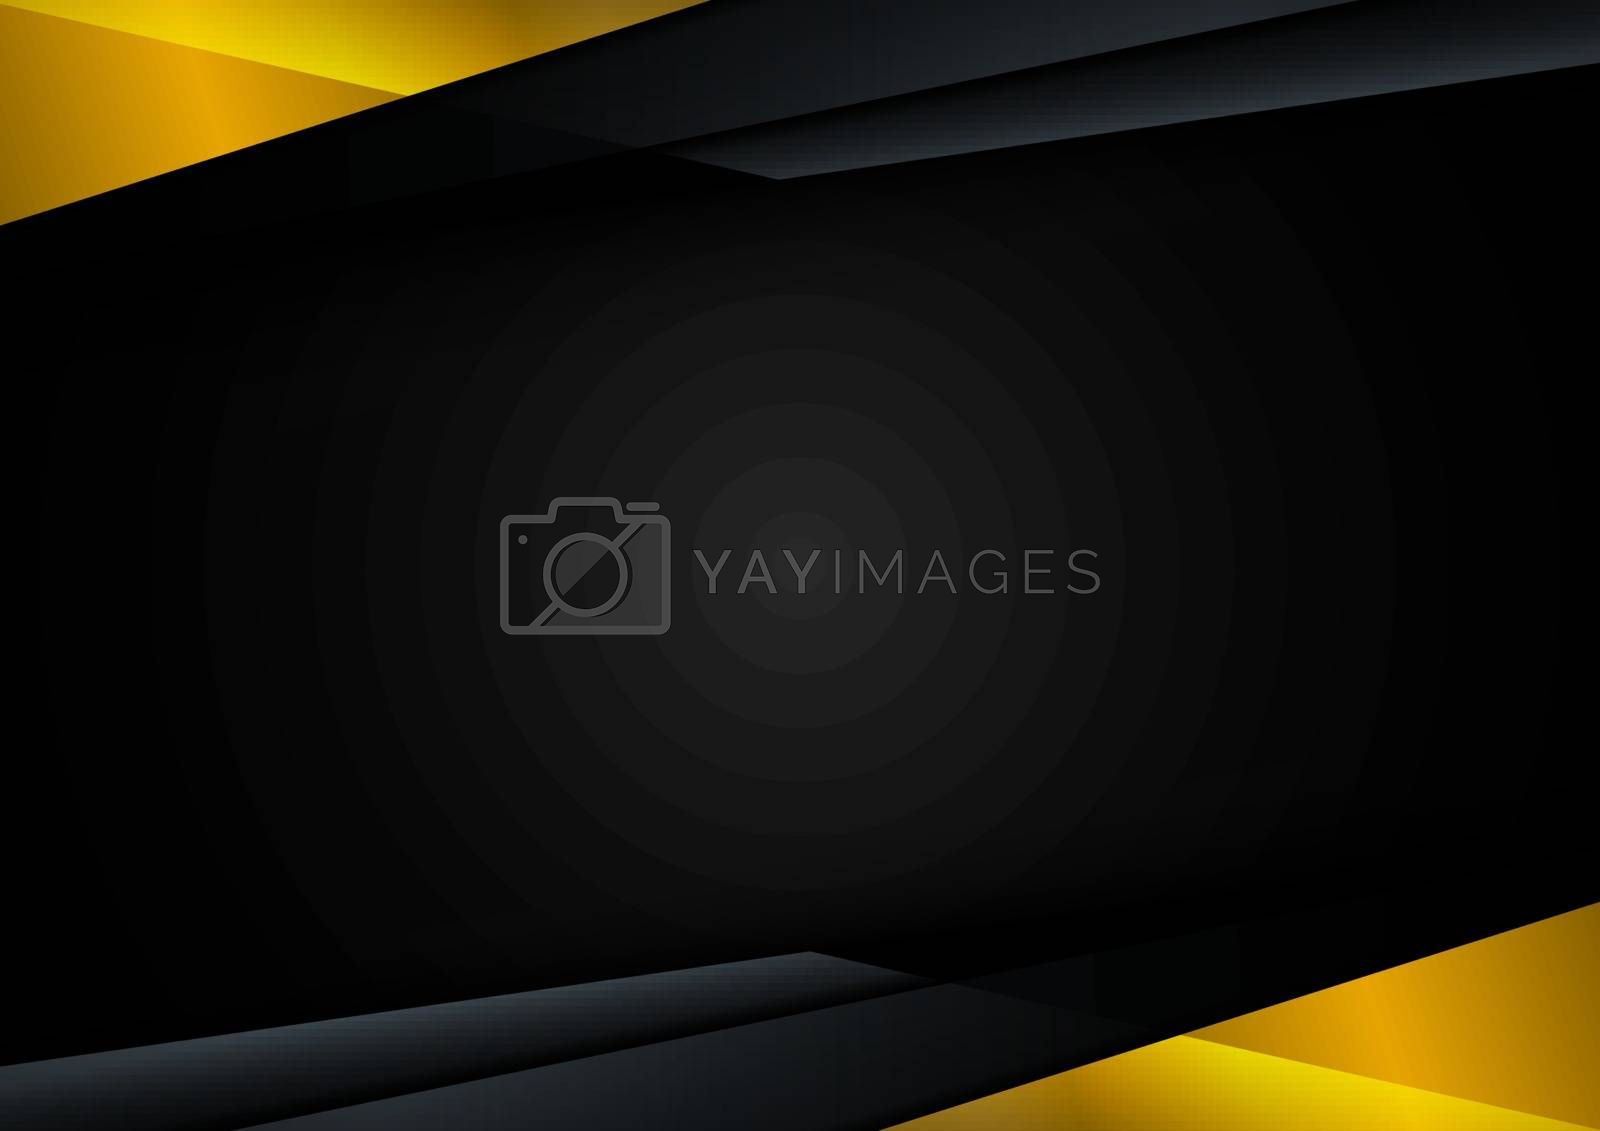 Template technology corporate concept abstract triangle geometric black and yellow on dark background with space for your text. Vector illustration